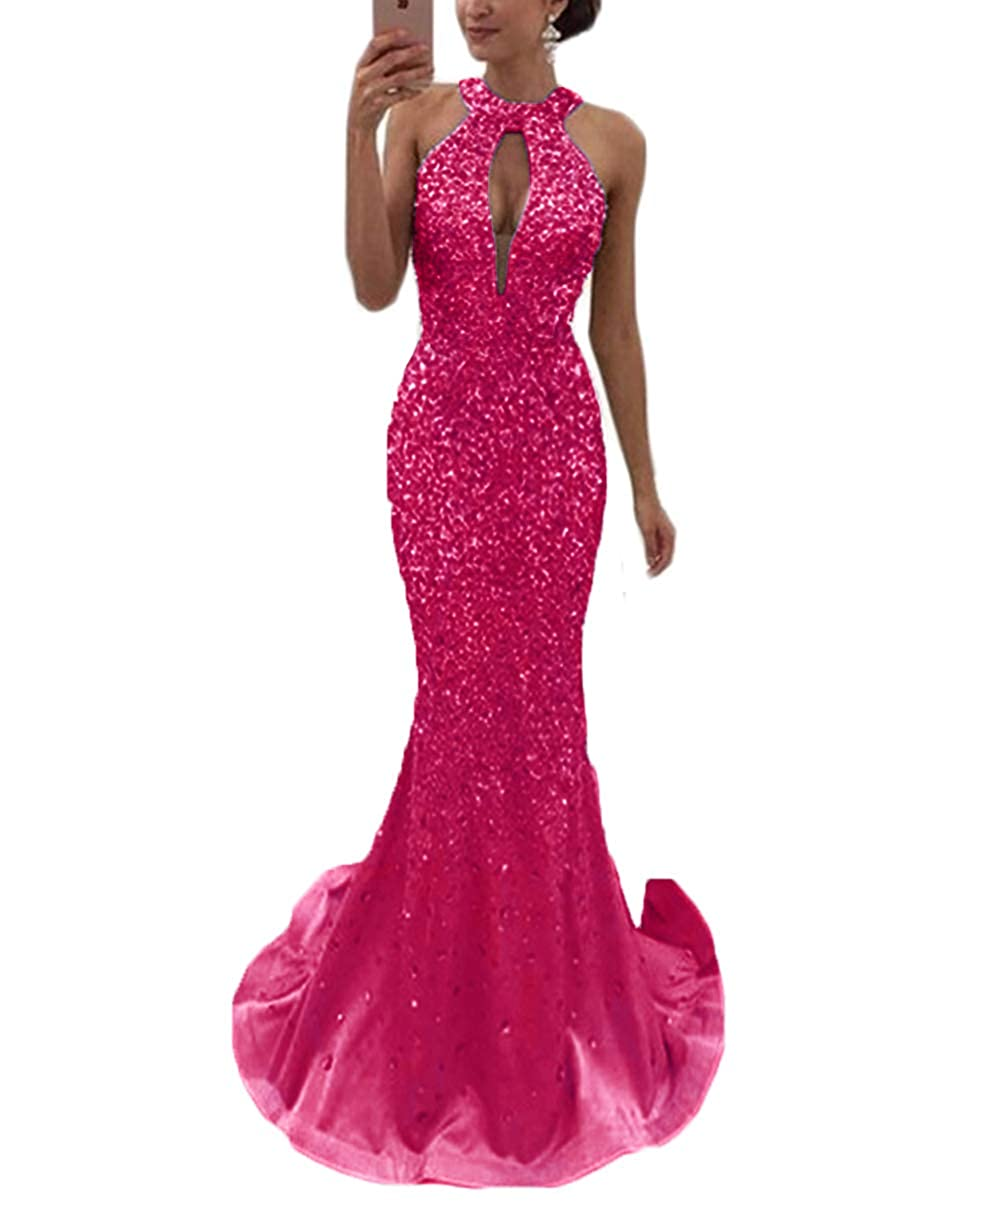 Fuchsia SDRESS Women's Crystal Beaded Halter Key Hole Mermaid Evening Gowns Rhinestone Open Back Prom Dress